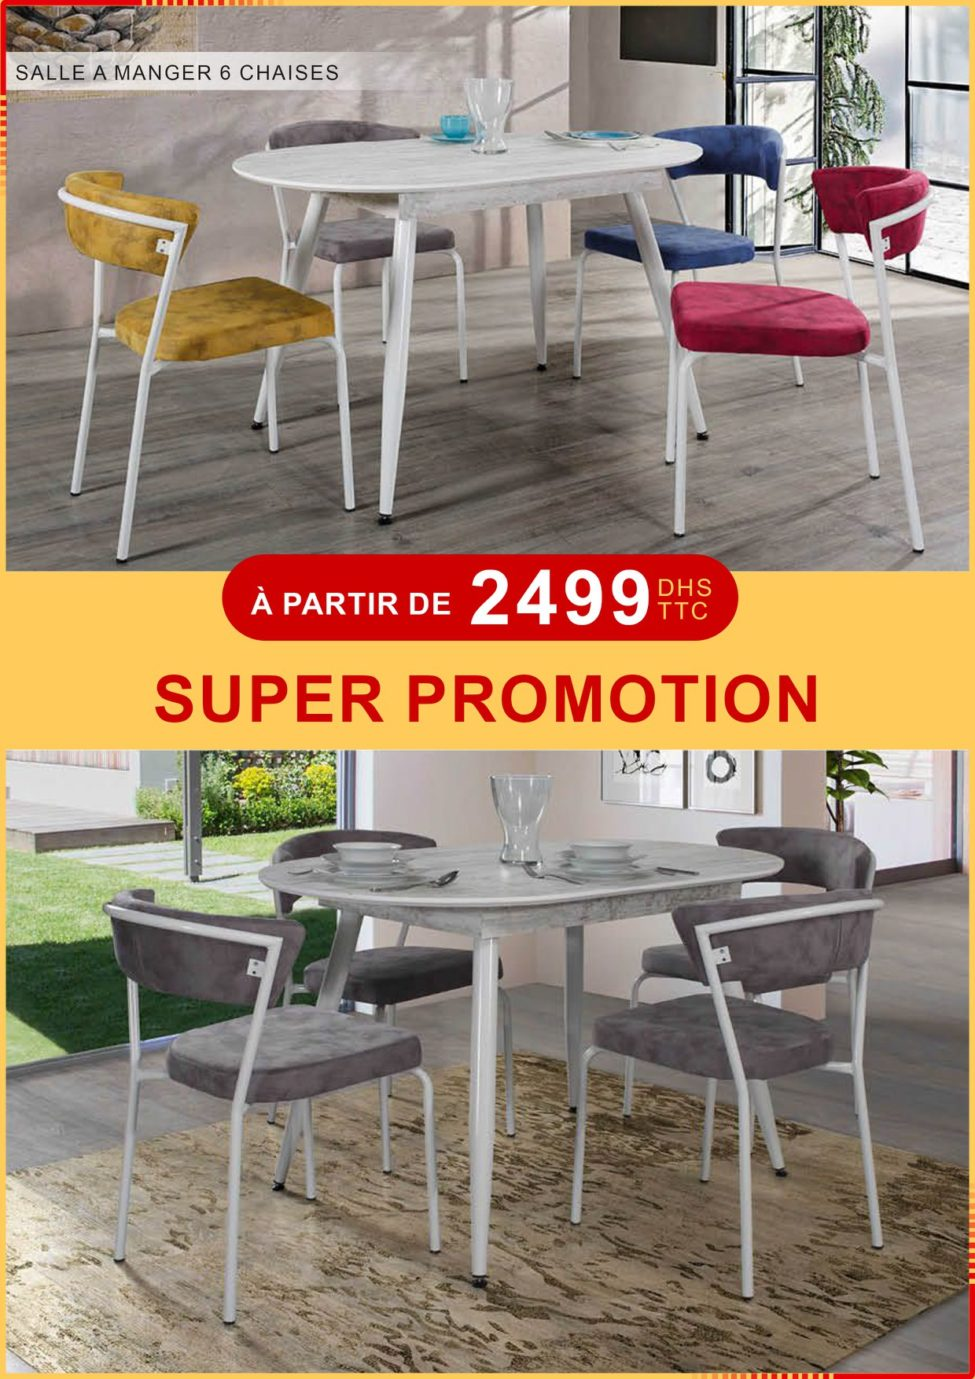 Chaises Promotion Super Promo Electro Bousfiha Table à Manger 6 Chaises à Partir